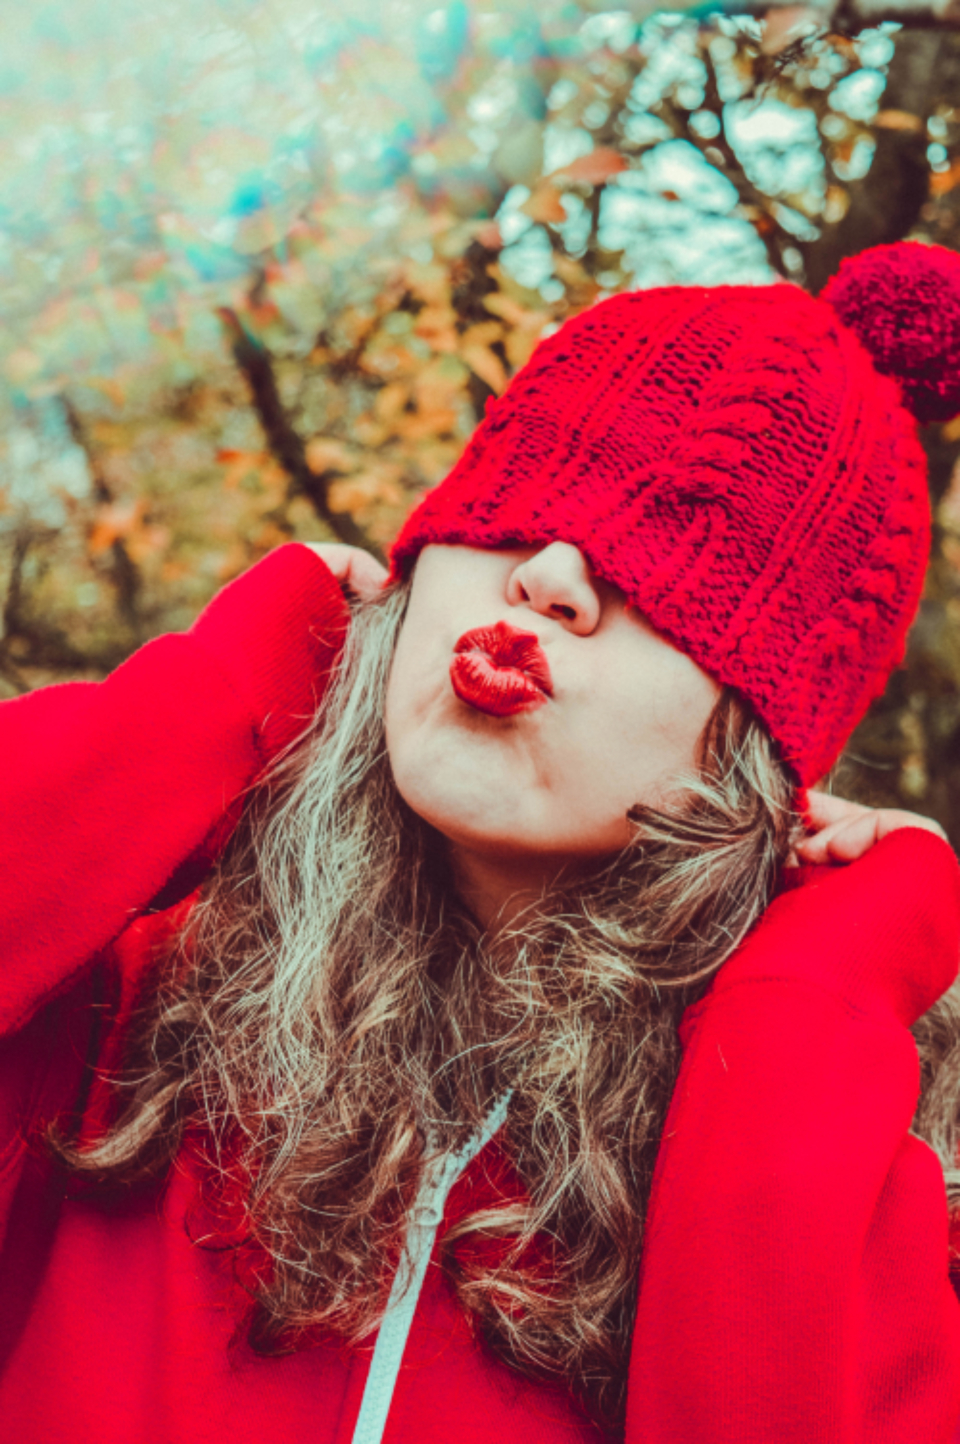 woman red hat kiss nature outdoors pose funny silly portrait person autumn